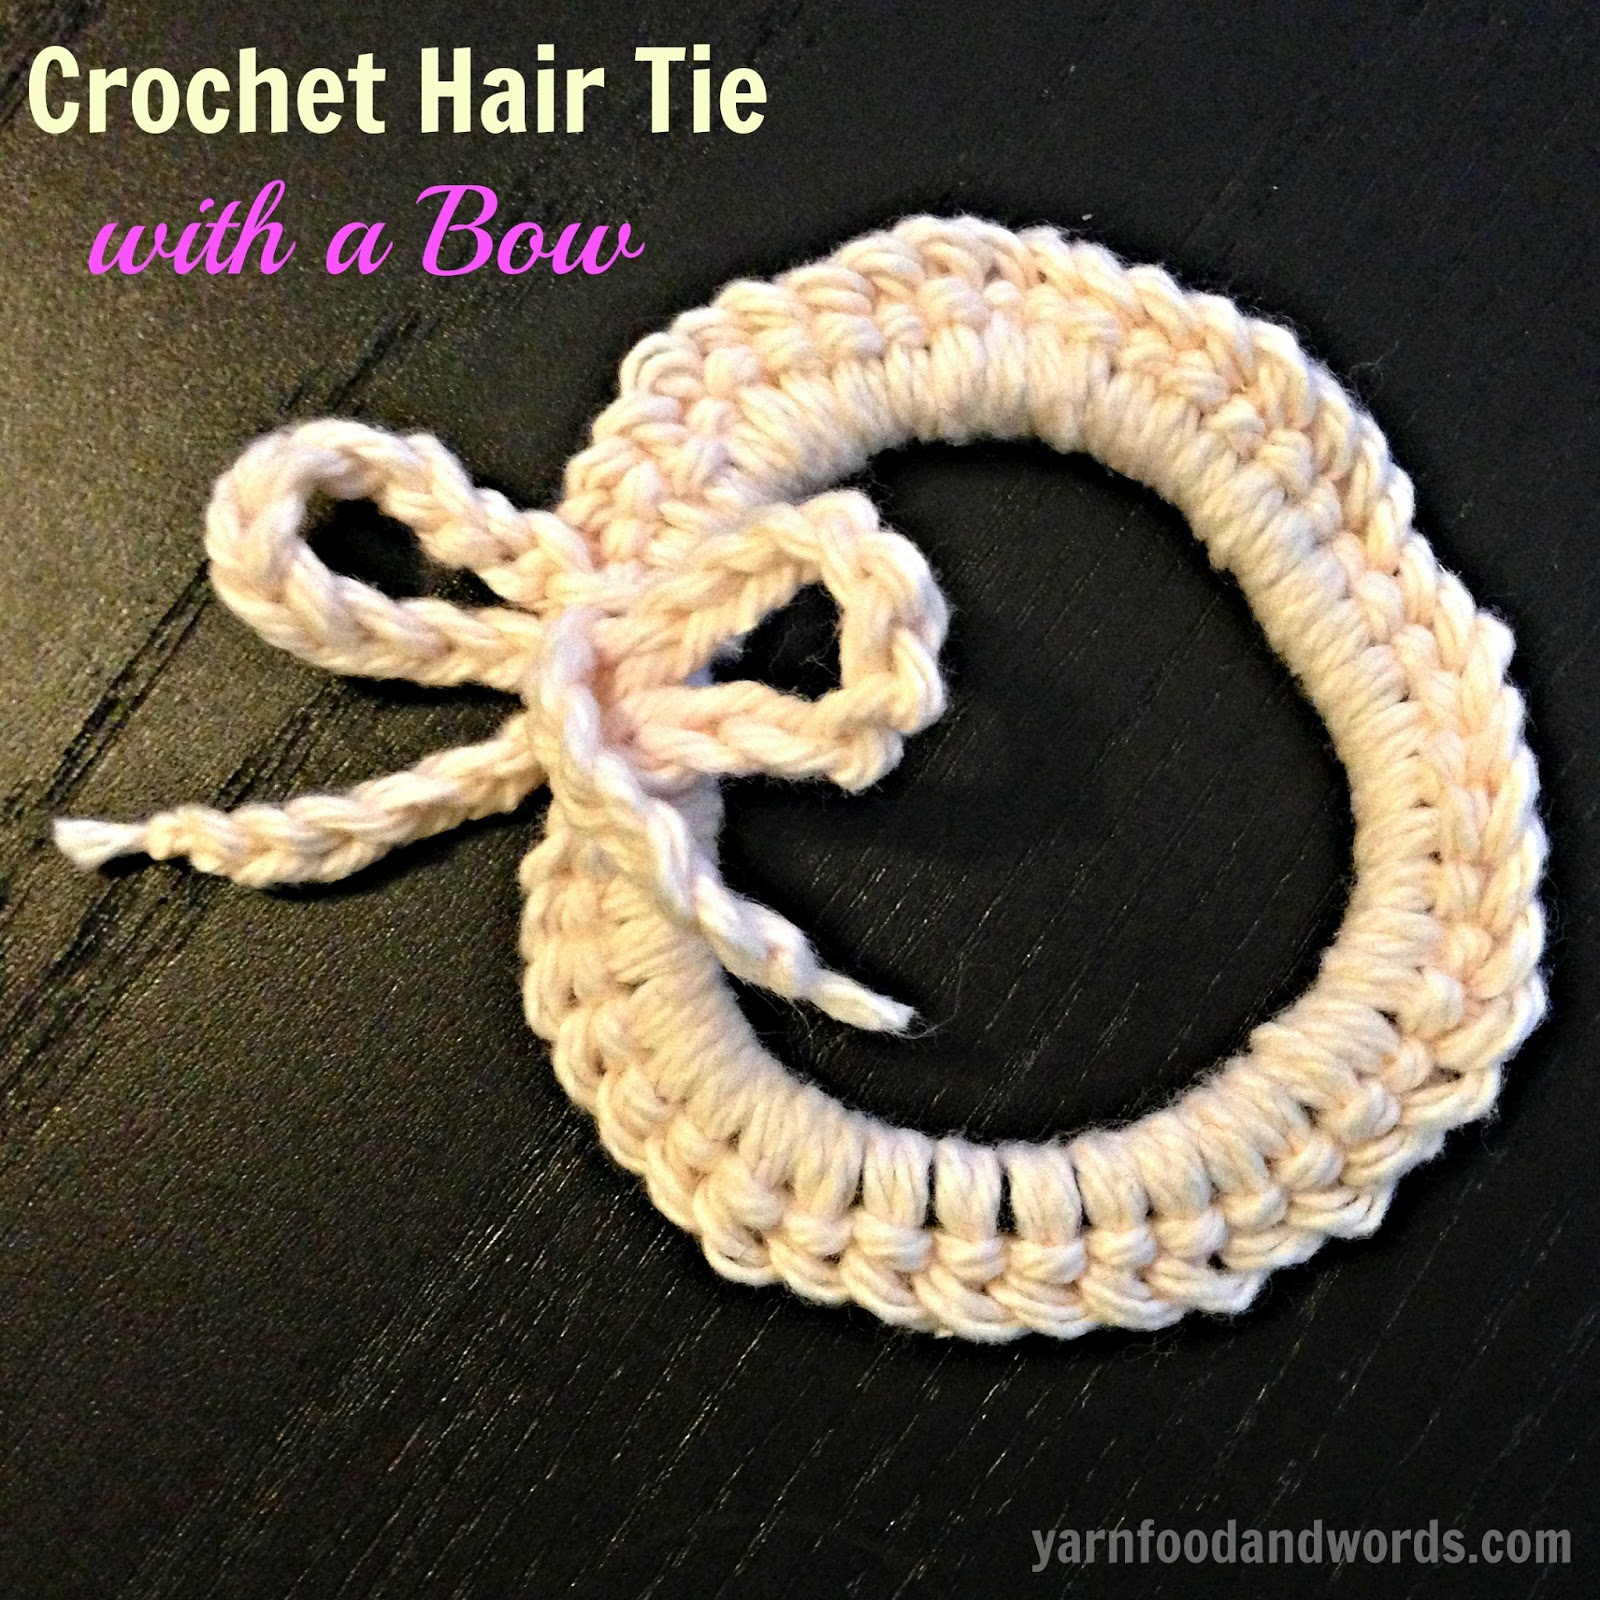 Crochet Hair Tie Patterns : Yarn, Food & Words.: Crochet Hair Tie with a Bow